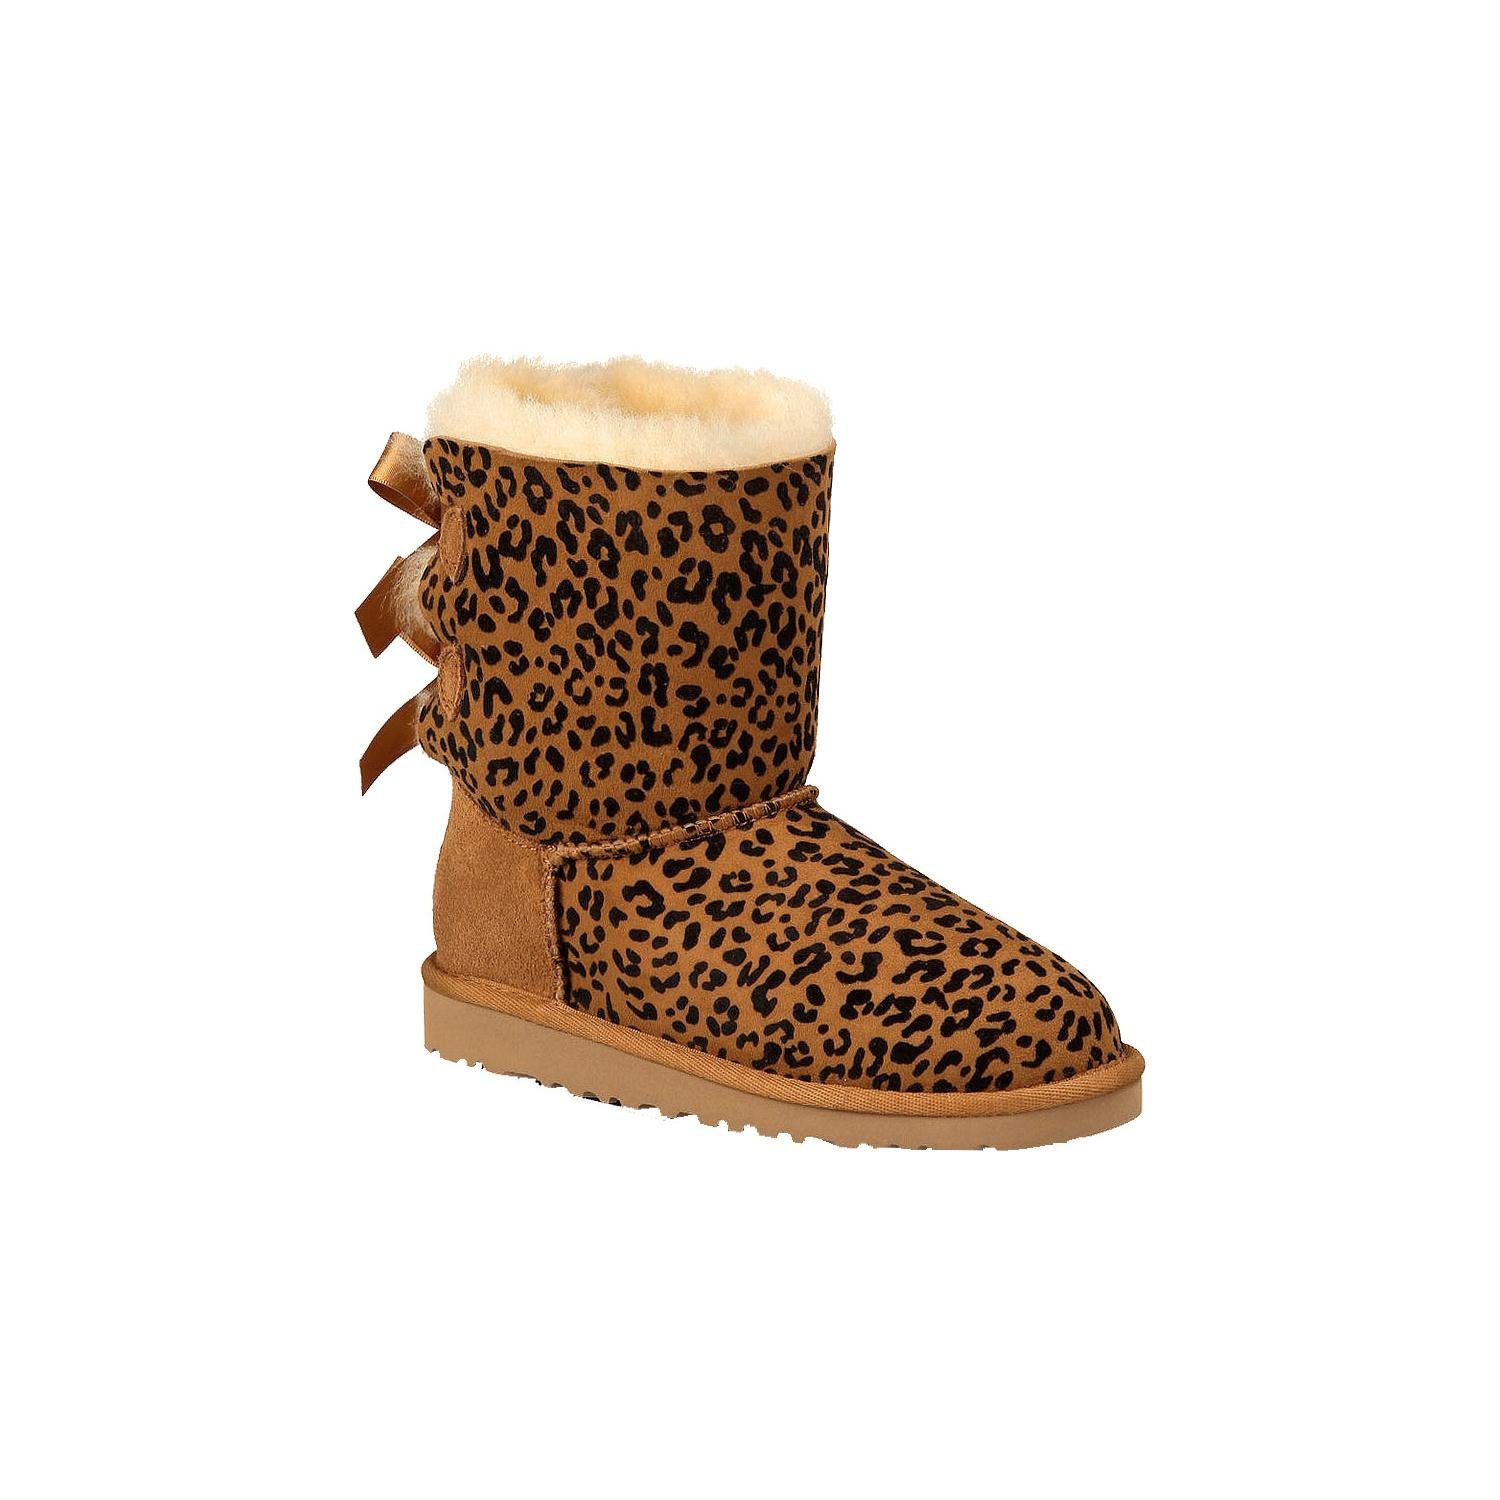 UGG Australia Kids Bailey Bow Rosette Boot Chestnut Size 4